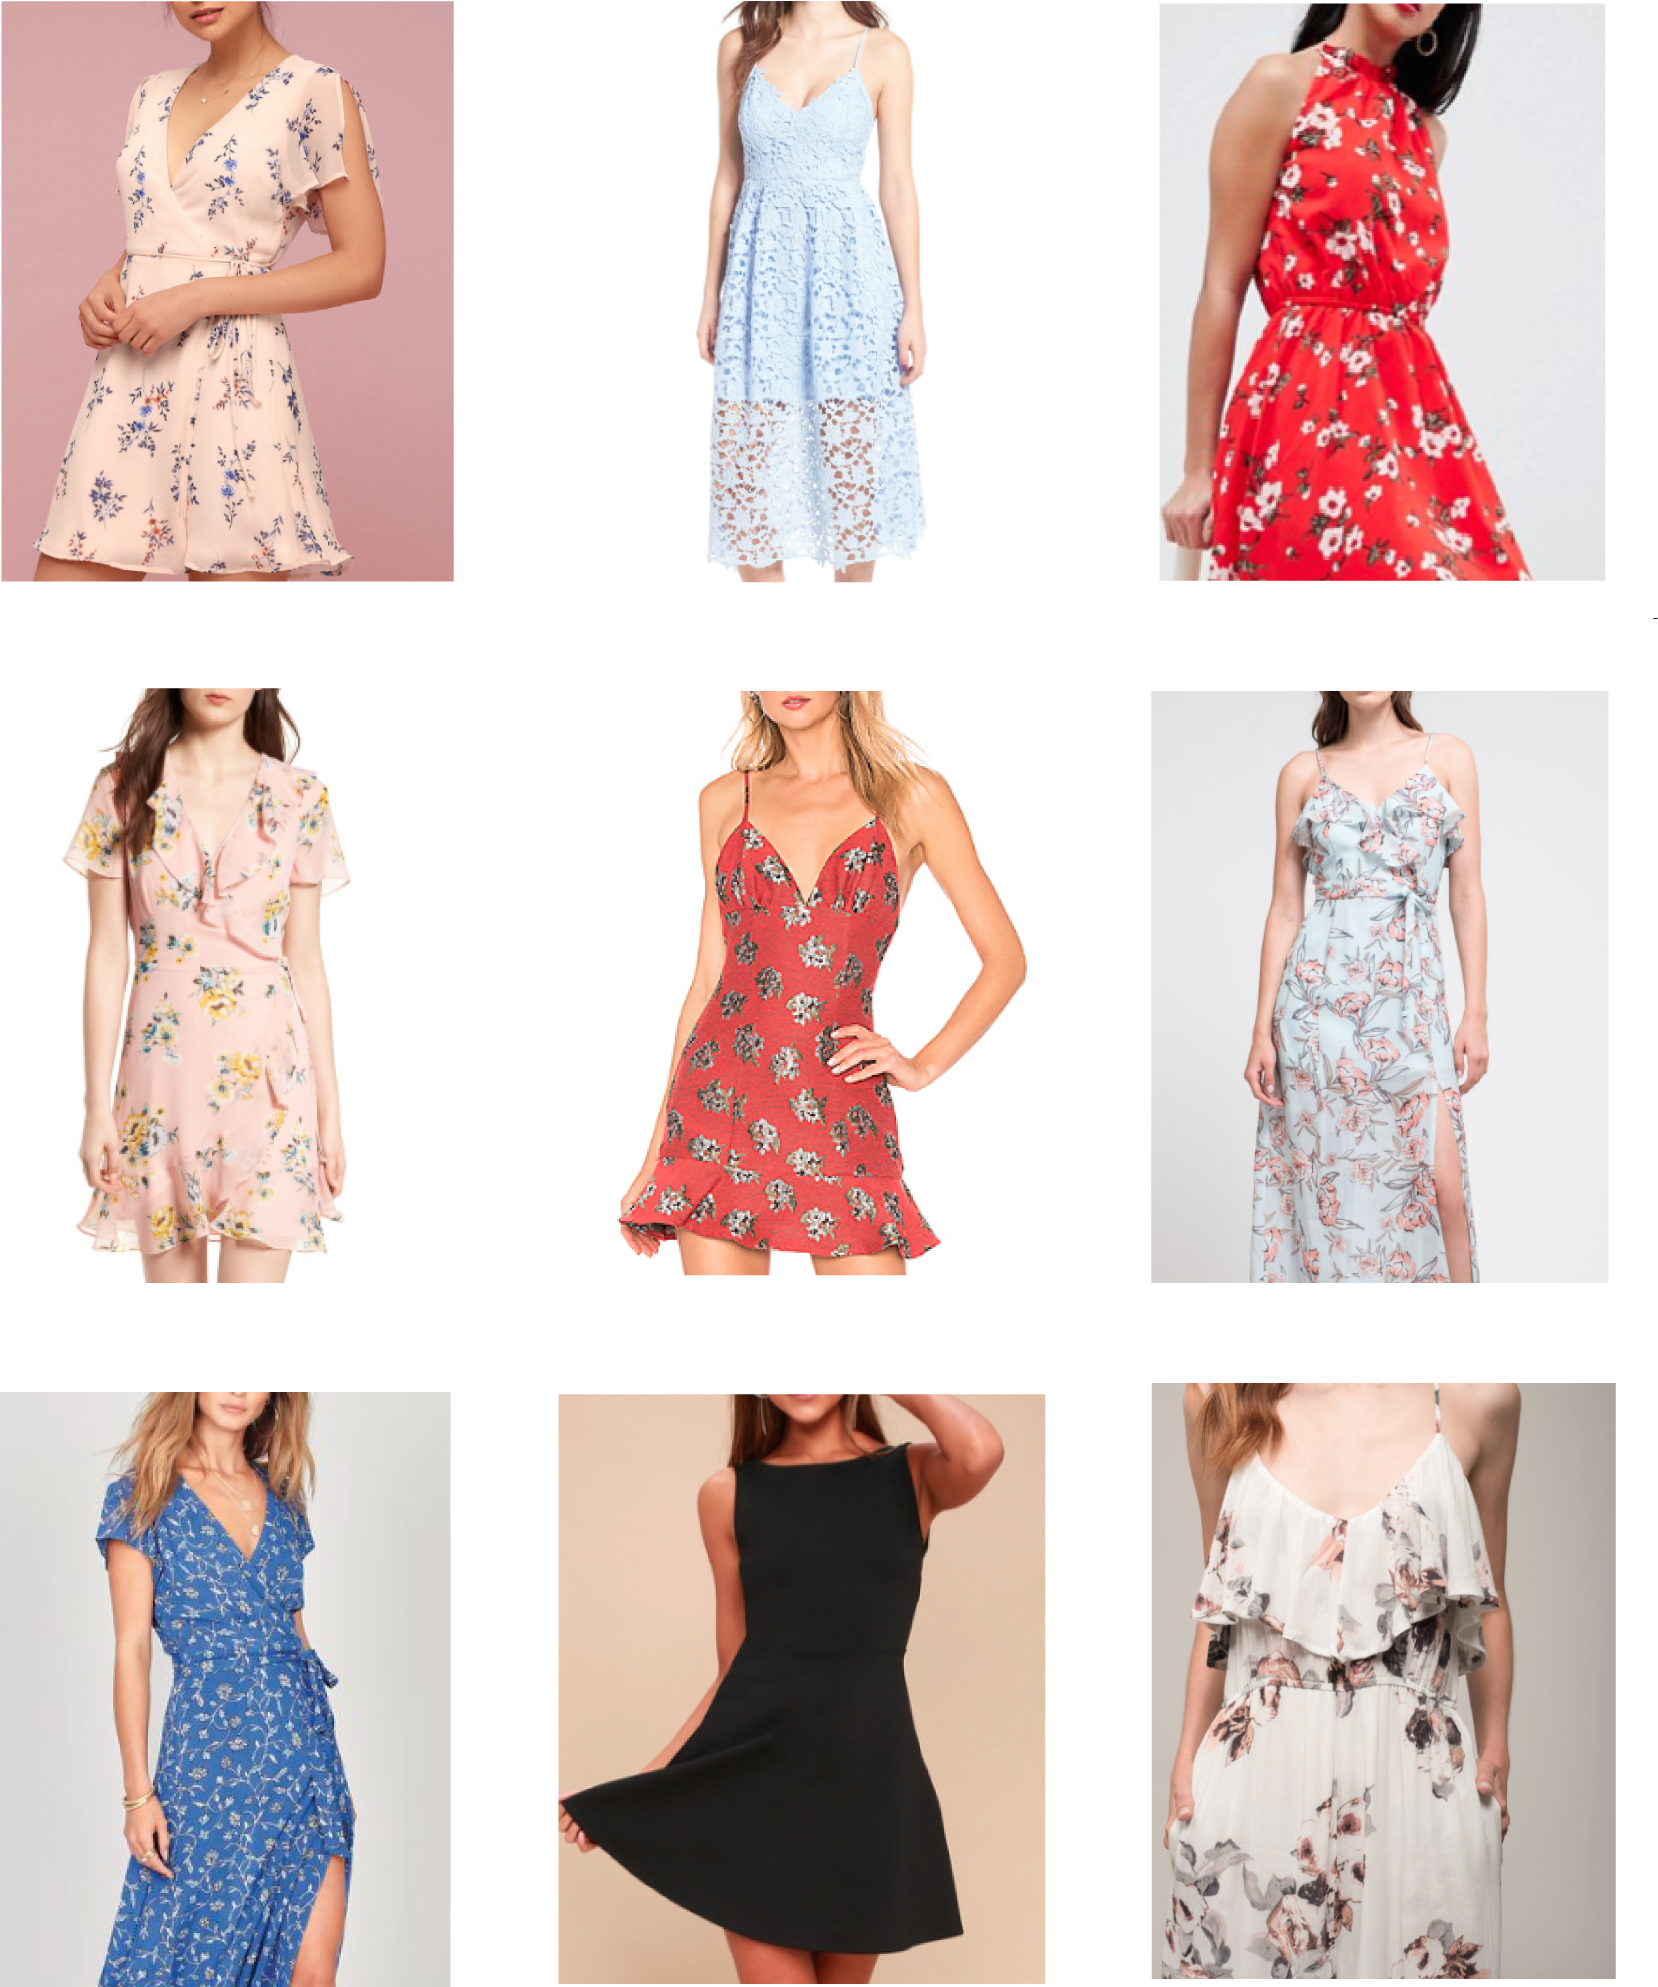 9 Affordable Dresses for a Summer Wedding